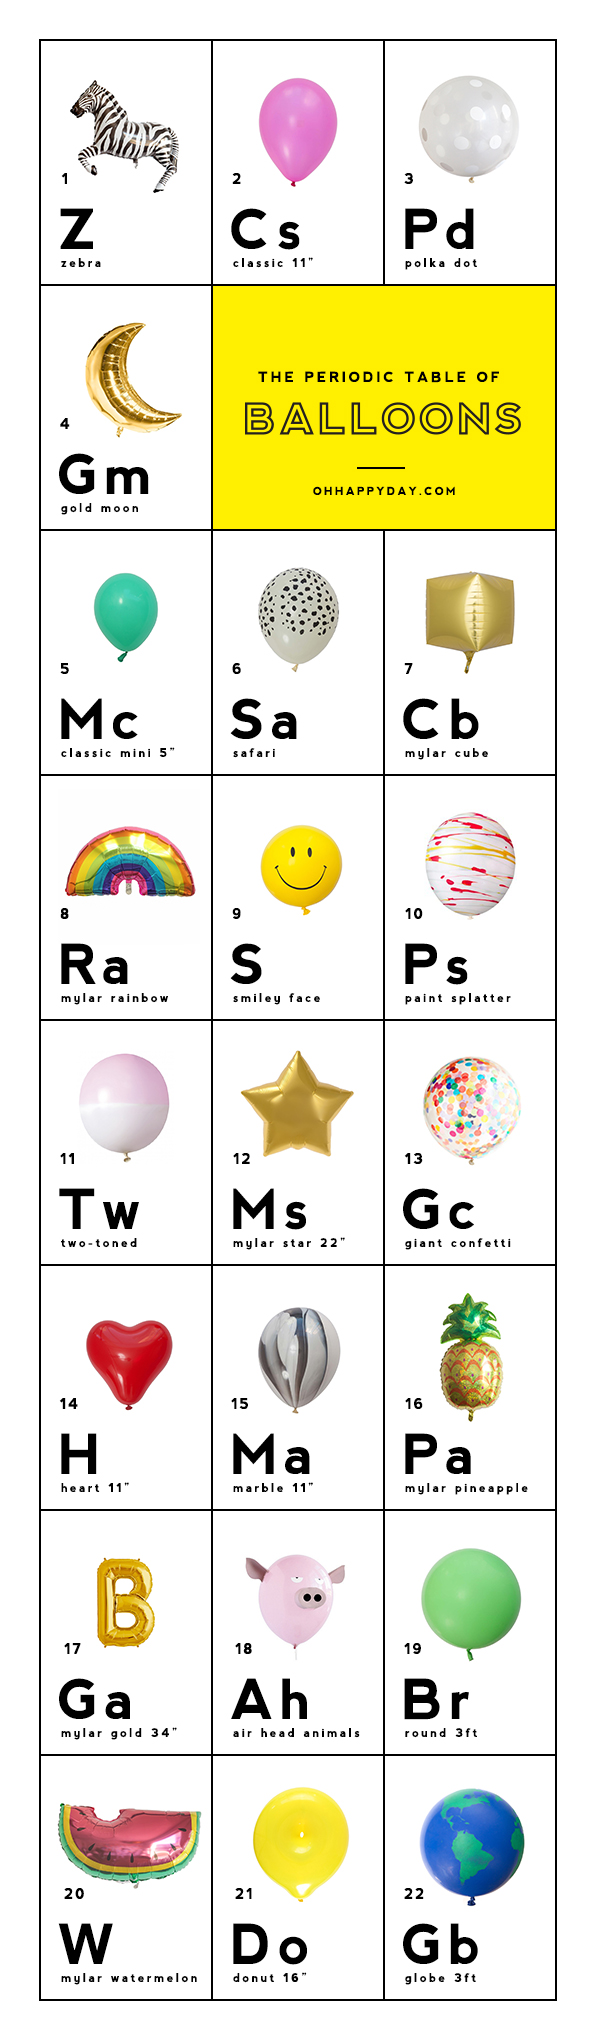 The Periodic Table of Balloons | Oh Happy Day!